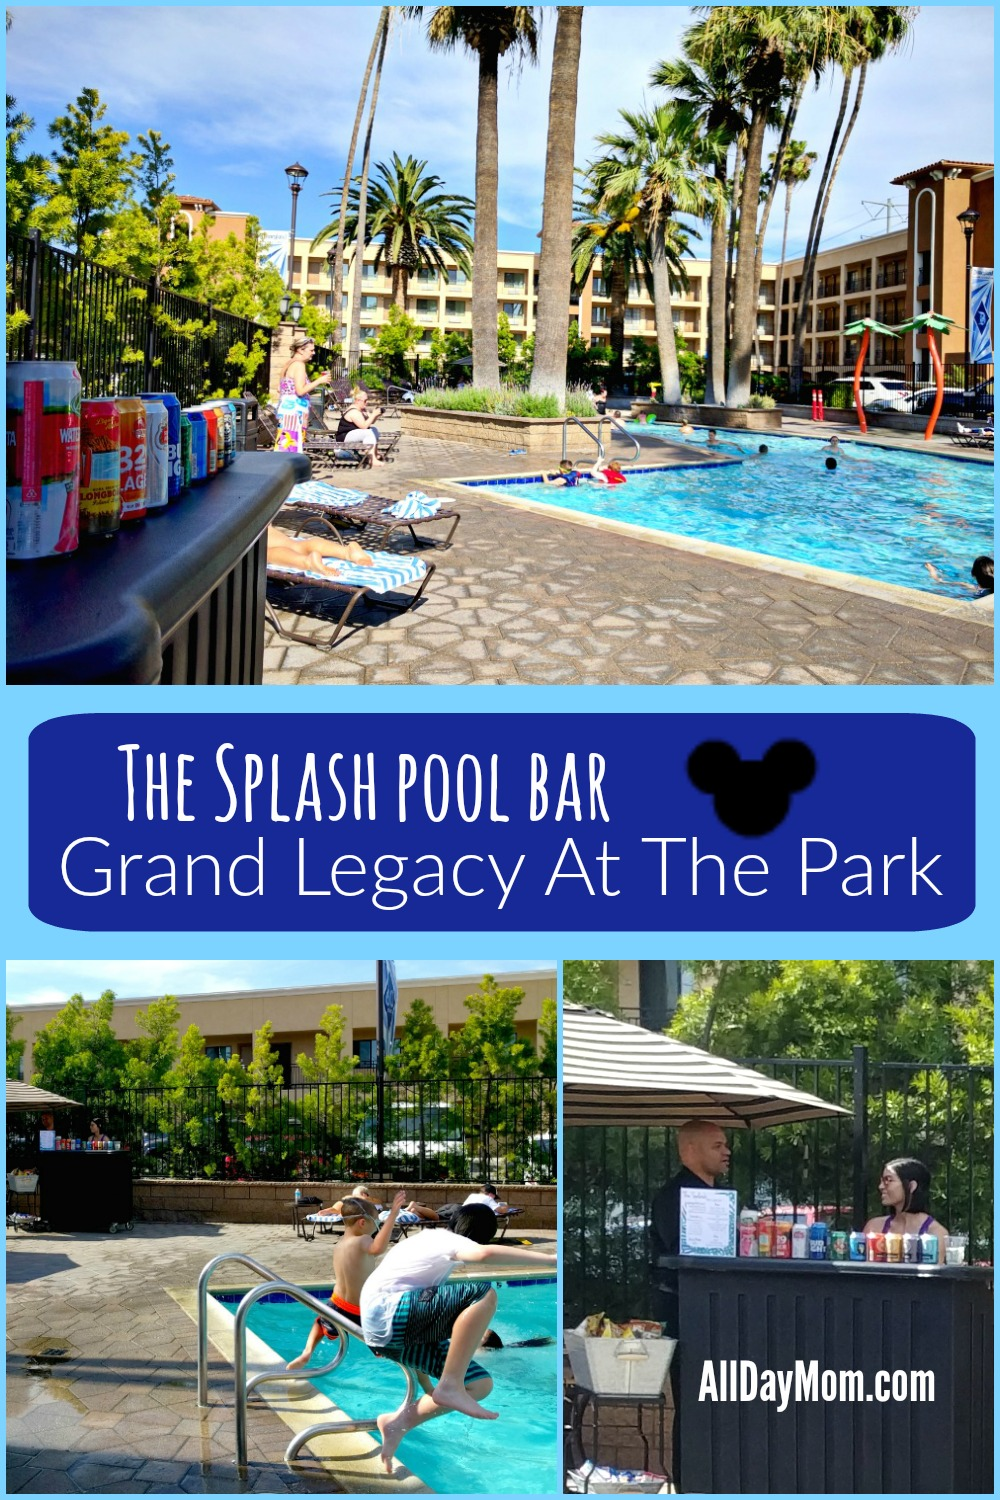 Grand Legacy just reached resort status! The Splash pool bar is open! #Disneyland #hotel #familytravel